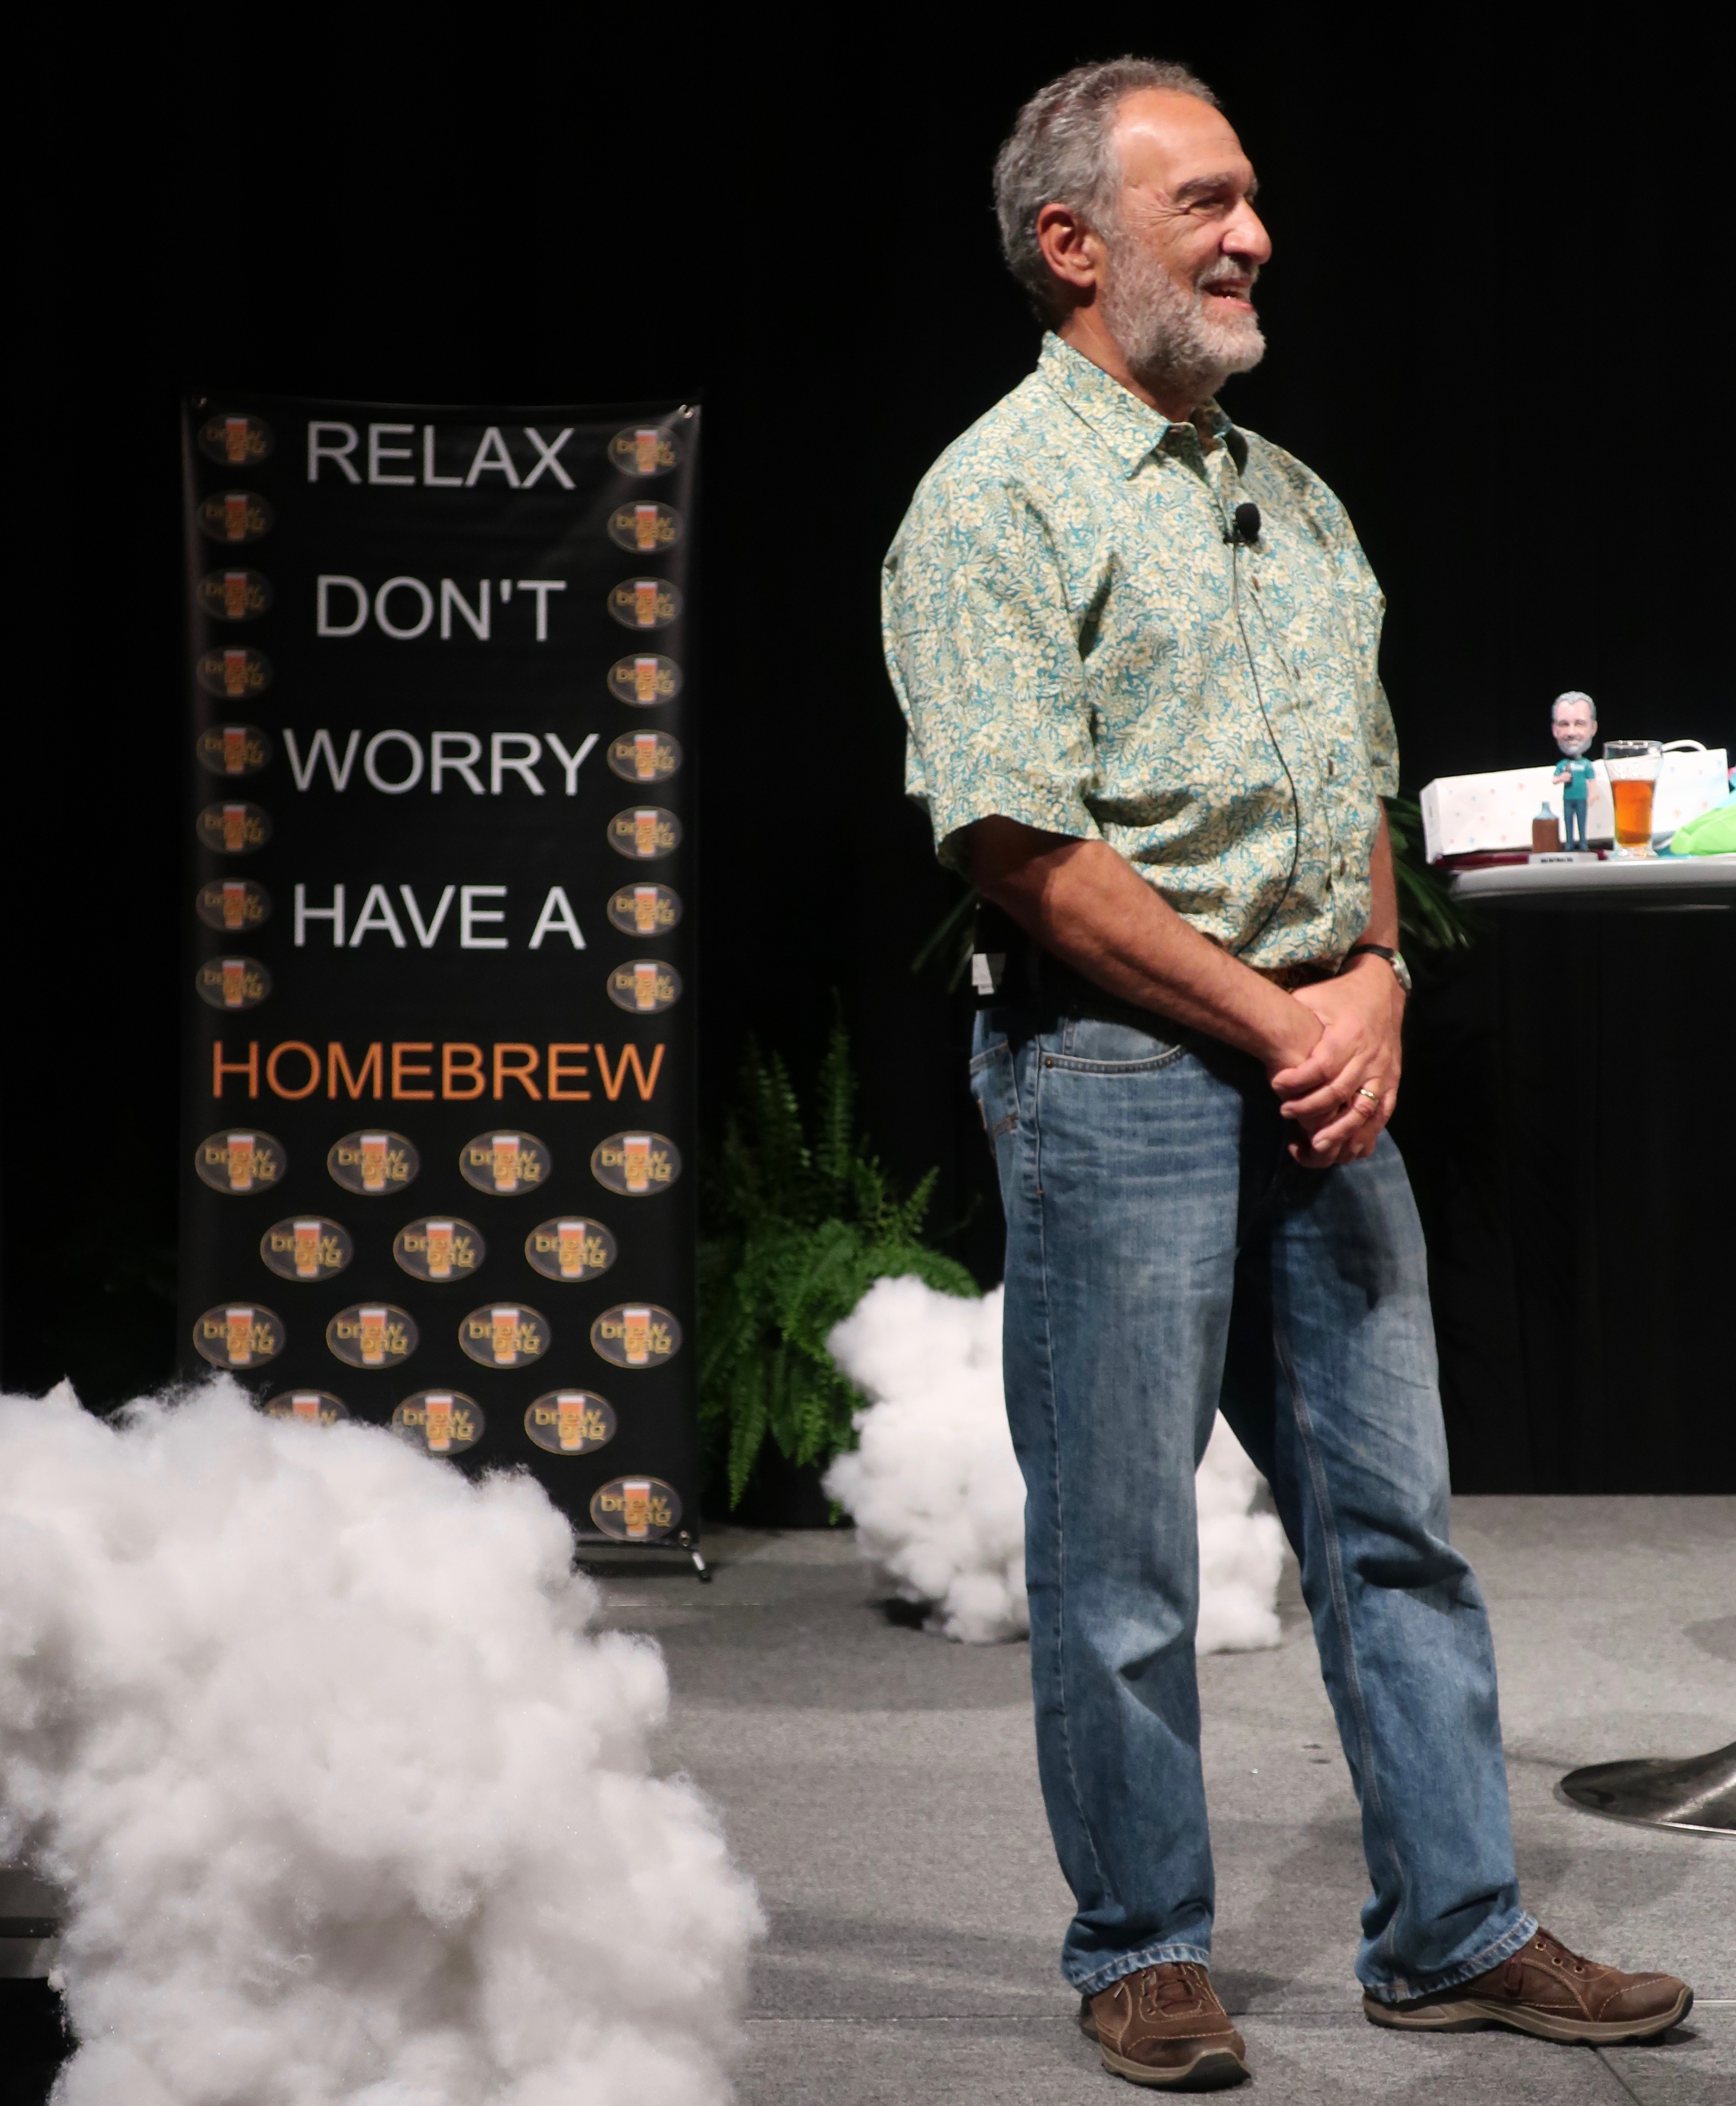 """Relax, Don't Worry, Have a Homebrew"" with Charlie Papazian during the Keynote Address at Homebrew Con 2018."